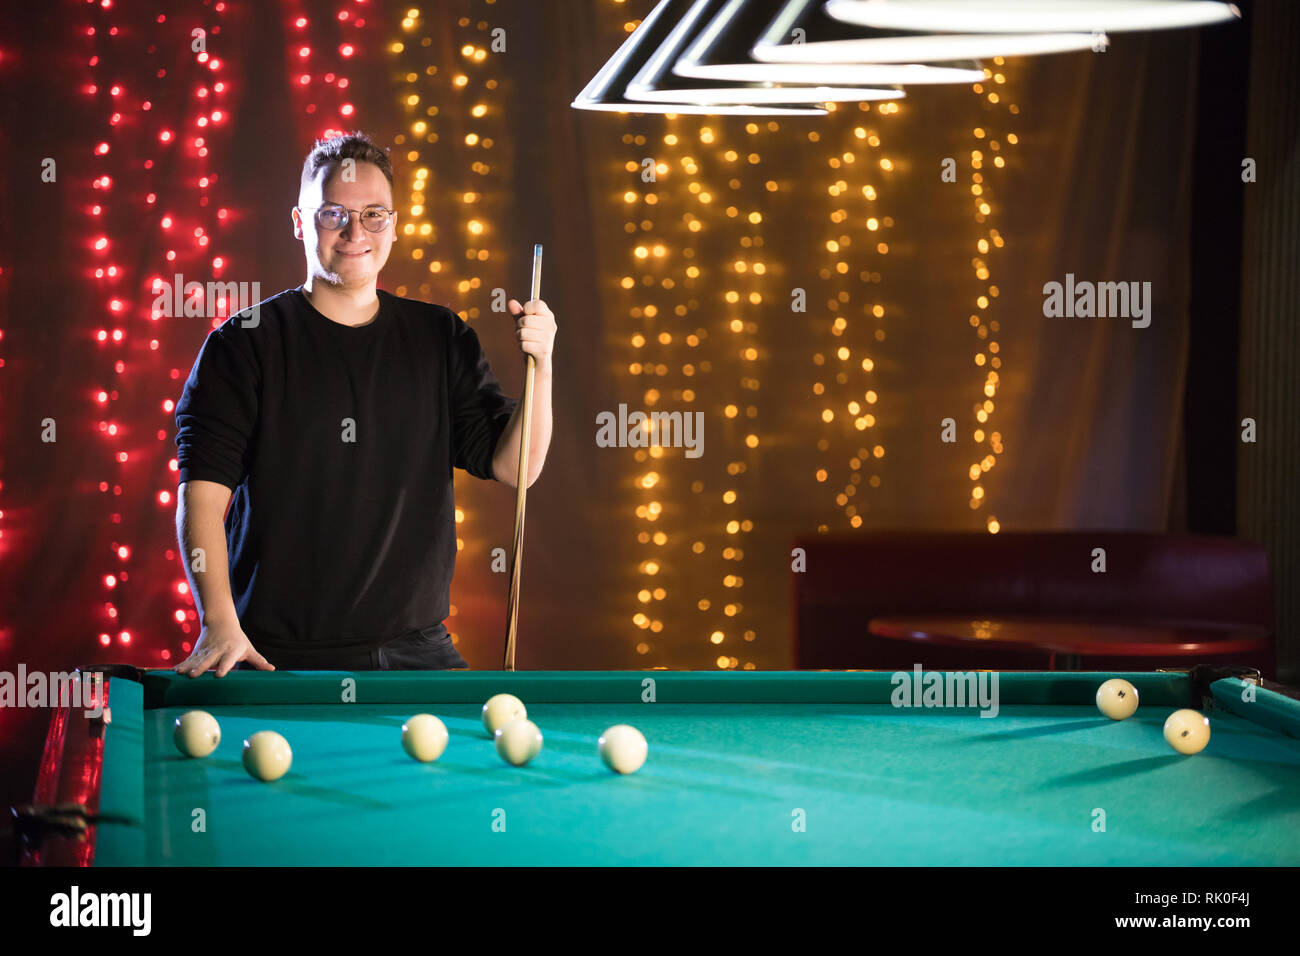 Billiard club. A young man in glasses standing by the table - Stock Image